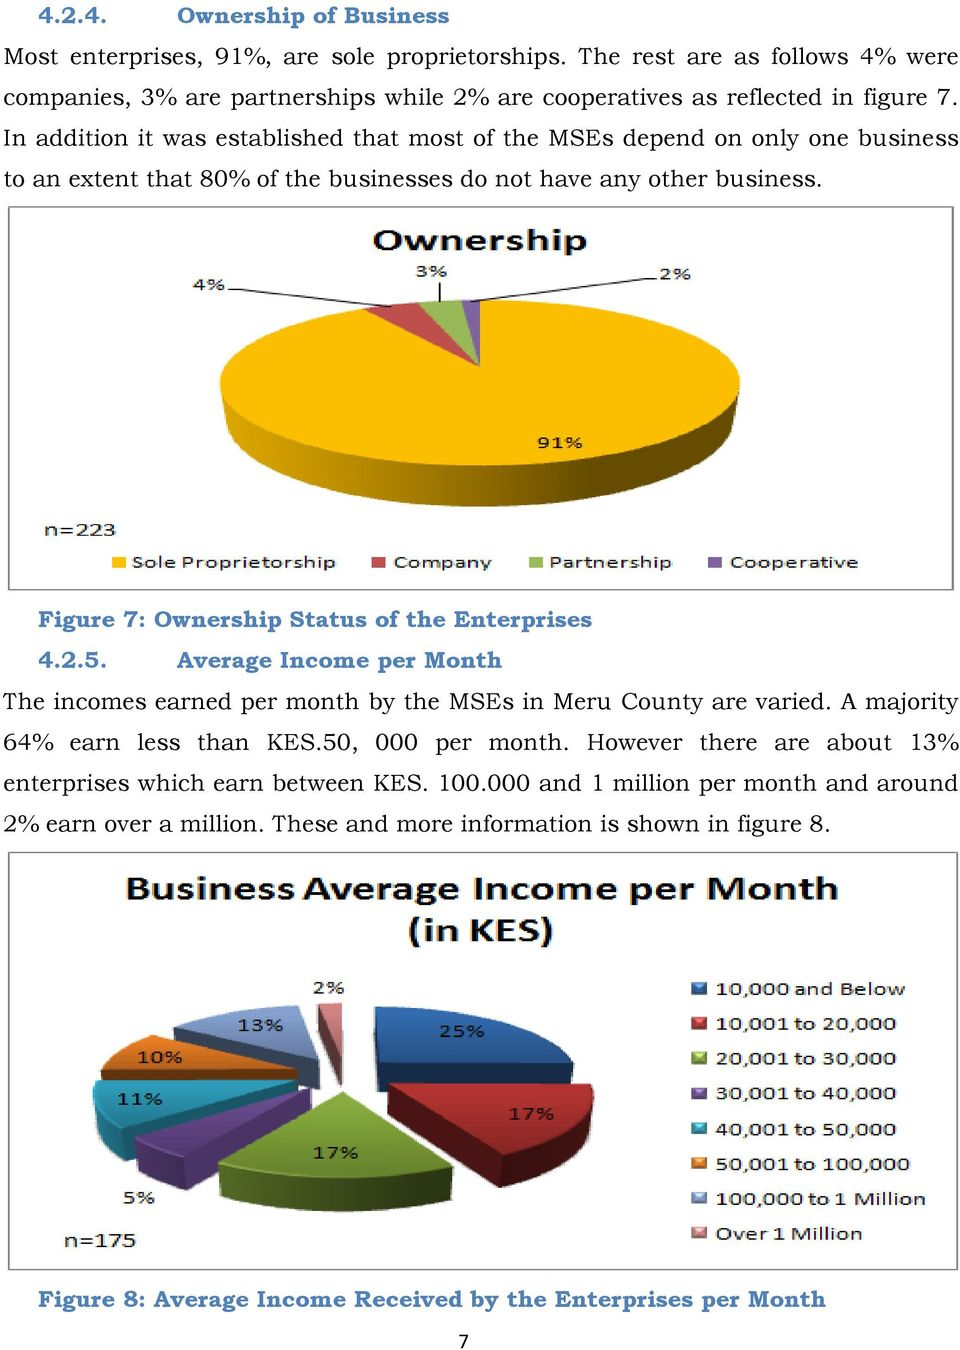 Figure 7: Ownership Status of the Enterprises 4.2.5. Average Income per Month The incomes earned per month by the MSEs in Meru County are varied. A majority 64% earn less than KES.50, 000 per month.